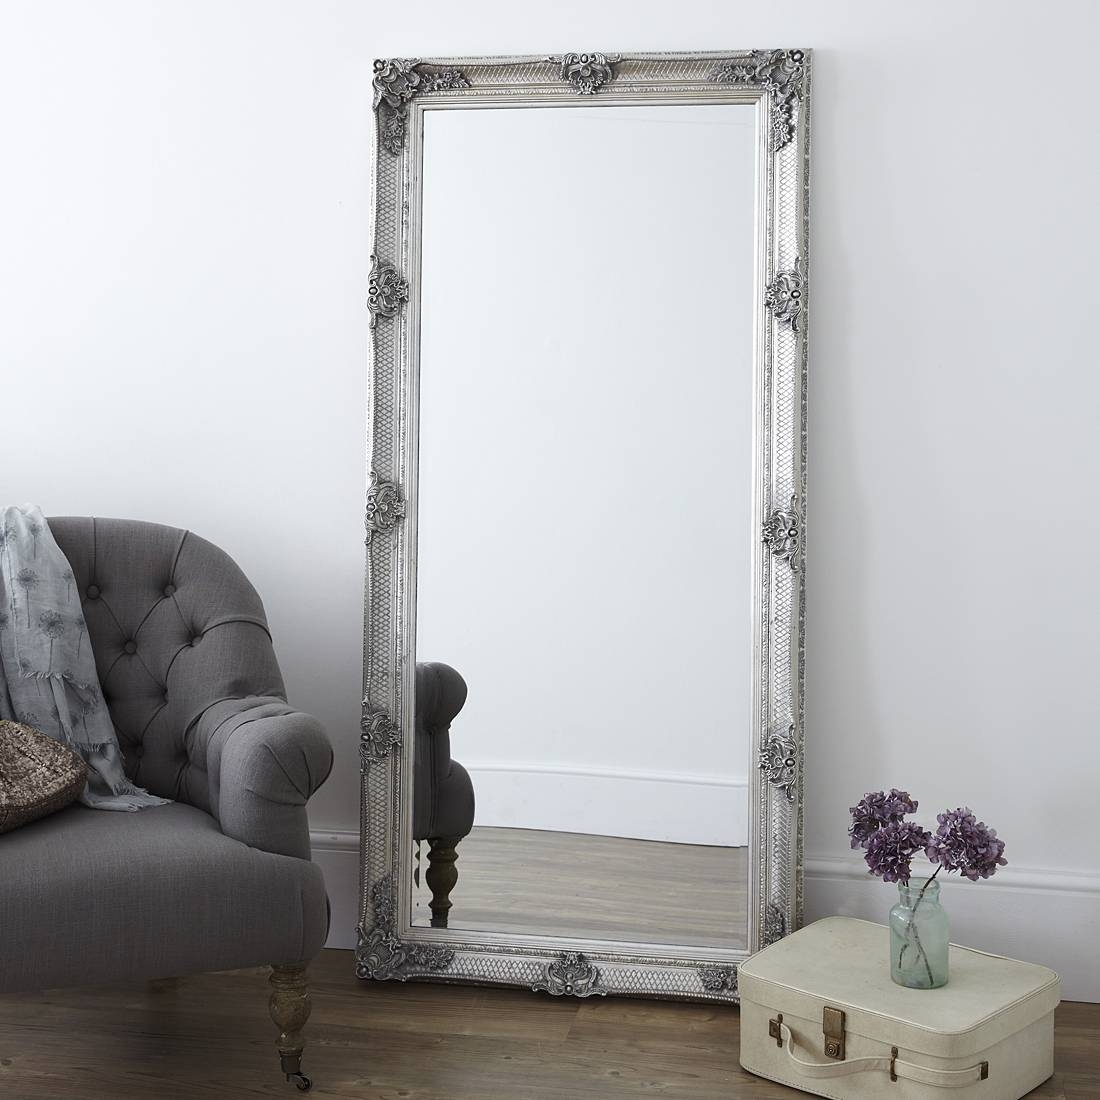 Decorative Antique Silver Full Length Mirror – Primrose & Plum With Regard To Floor Dressing Mirrors (View 6 of 15)